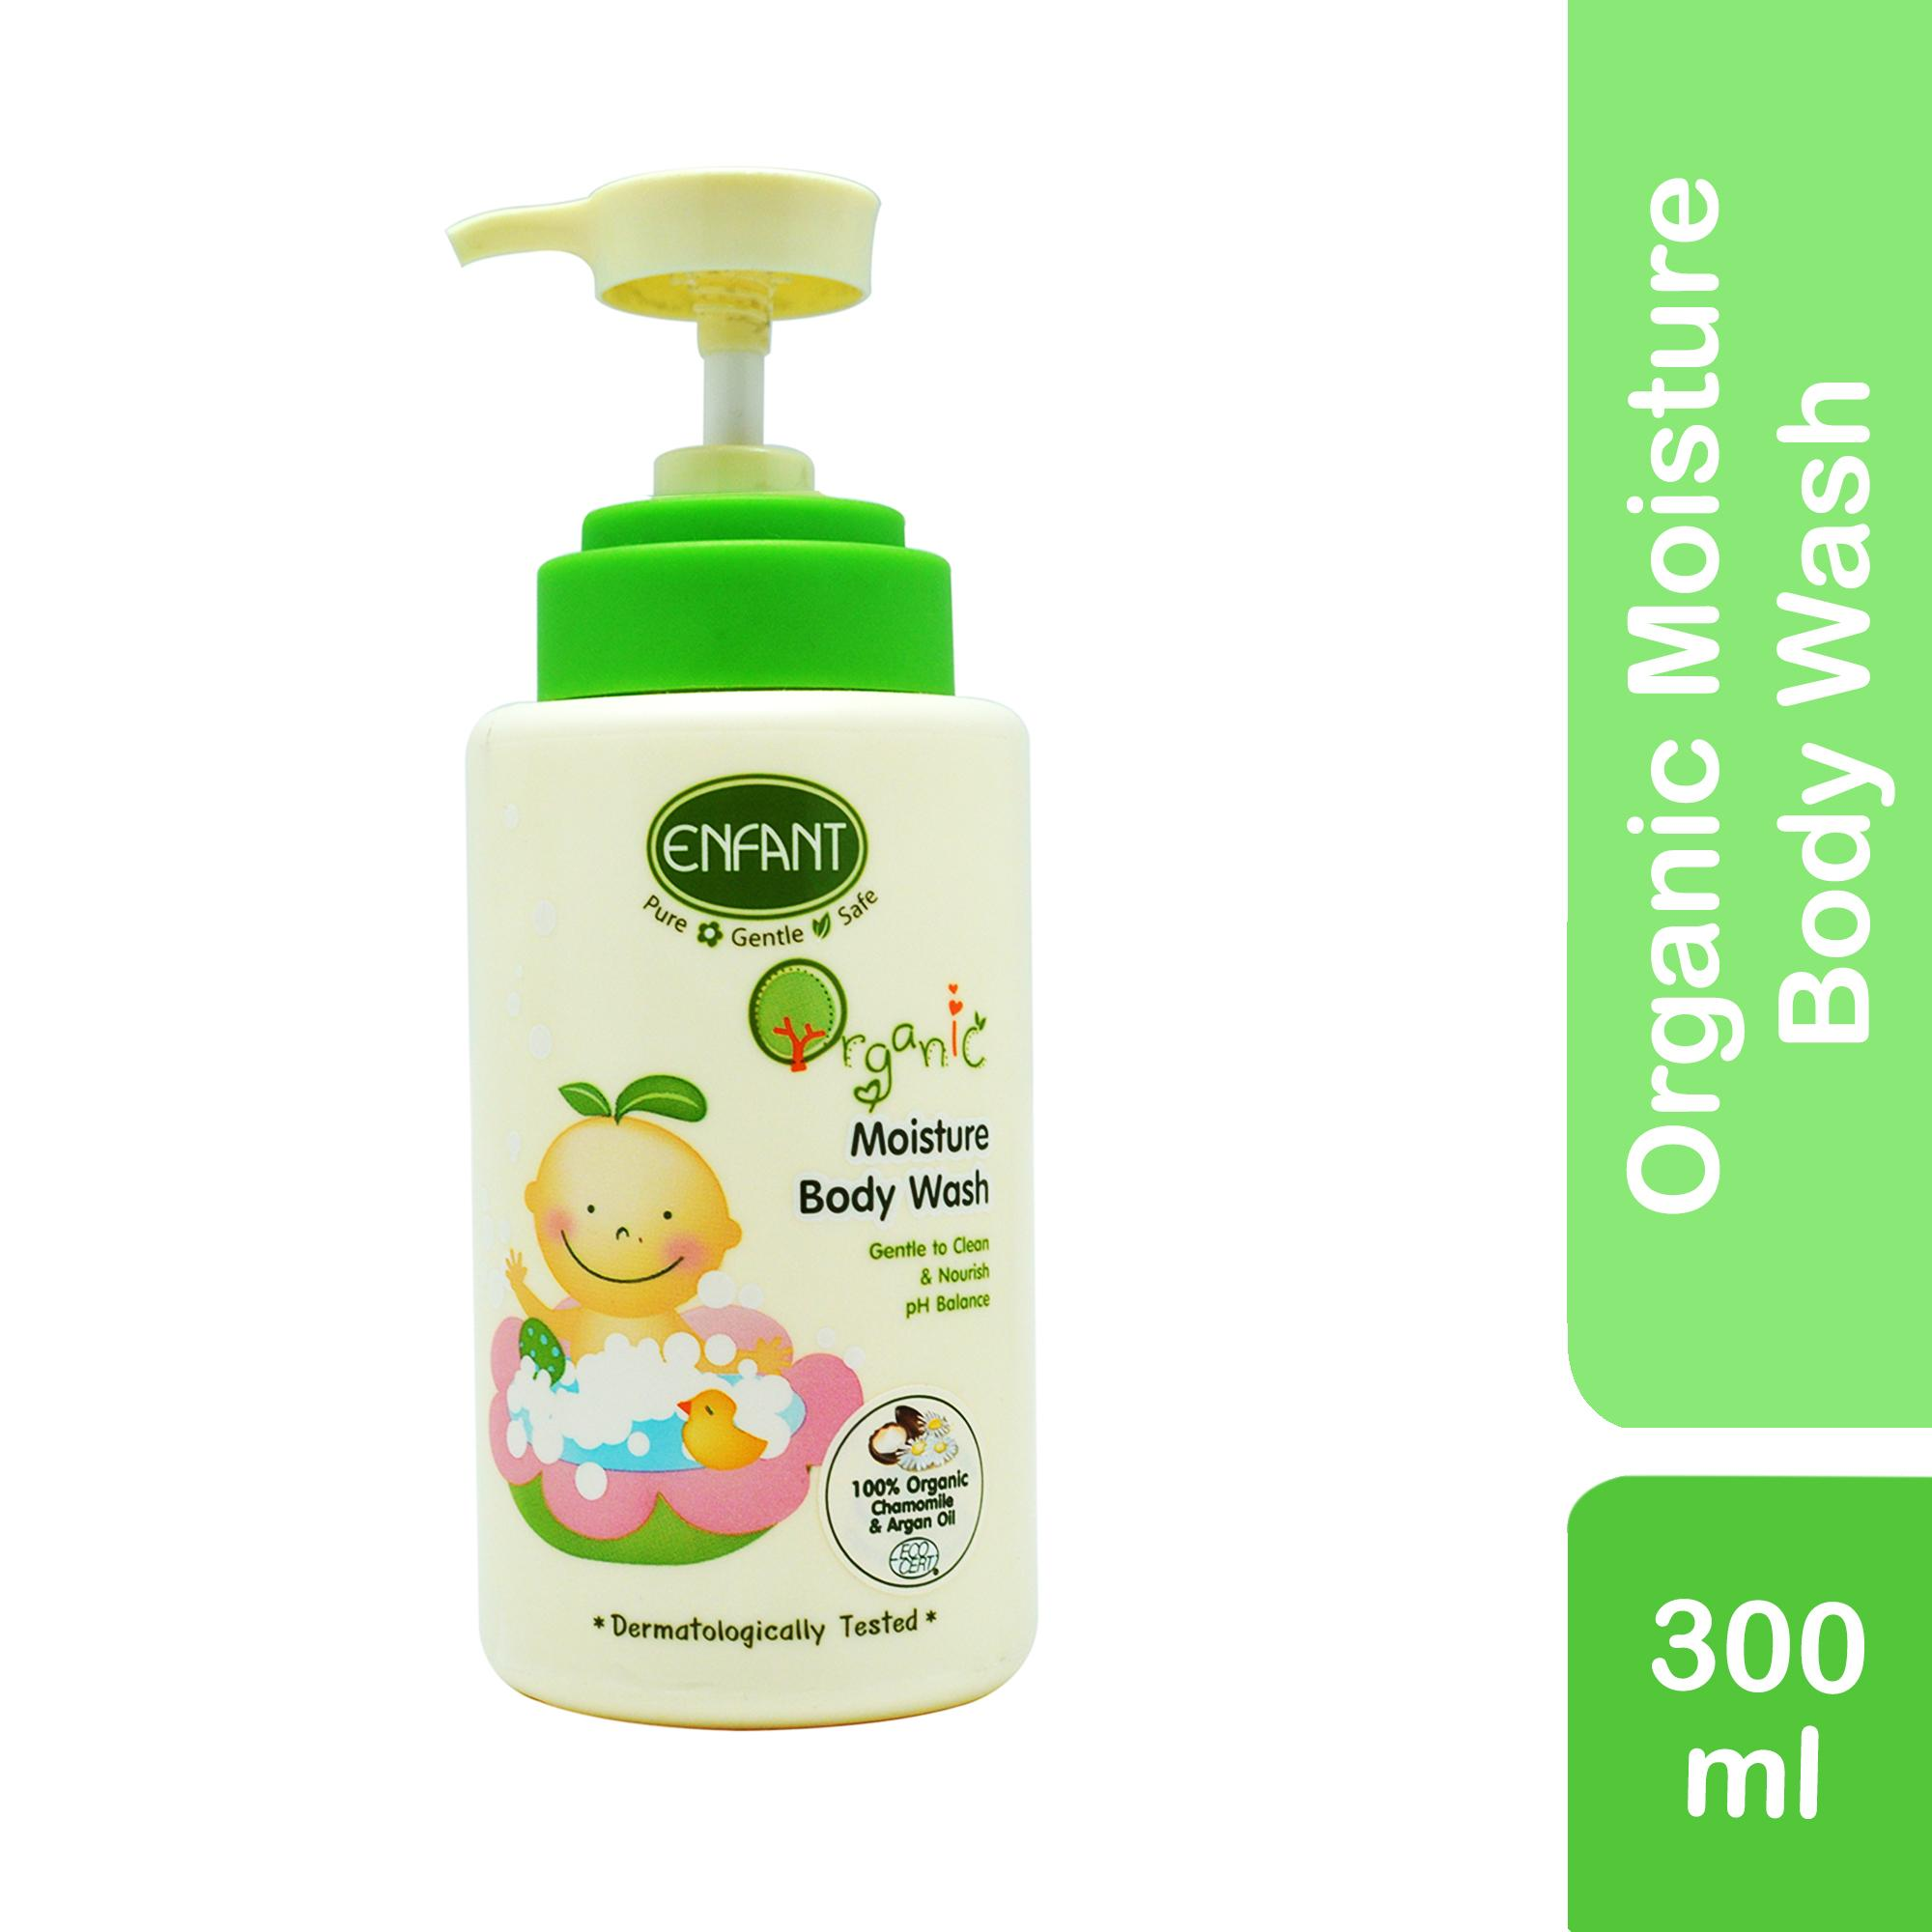 Baby Shampoos For Sale No Tears Shampoo Online Brands Prices Cussons Hair Body Wash Mild Gentle 400ml Reviews In Philippines